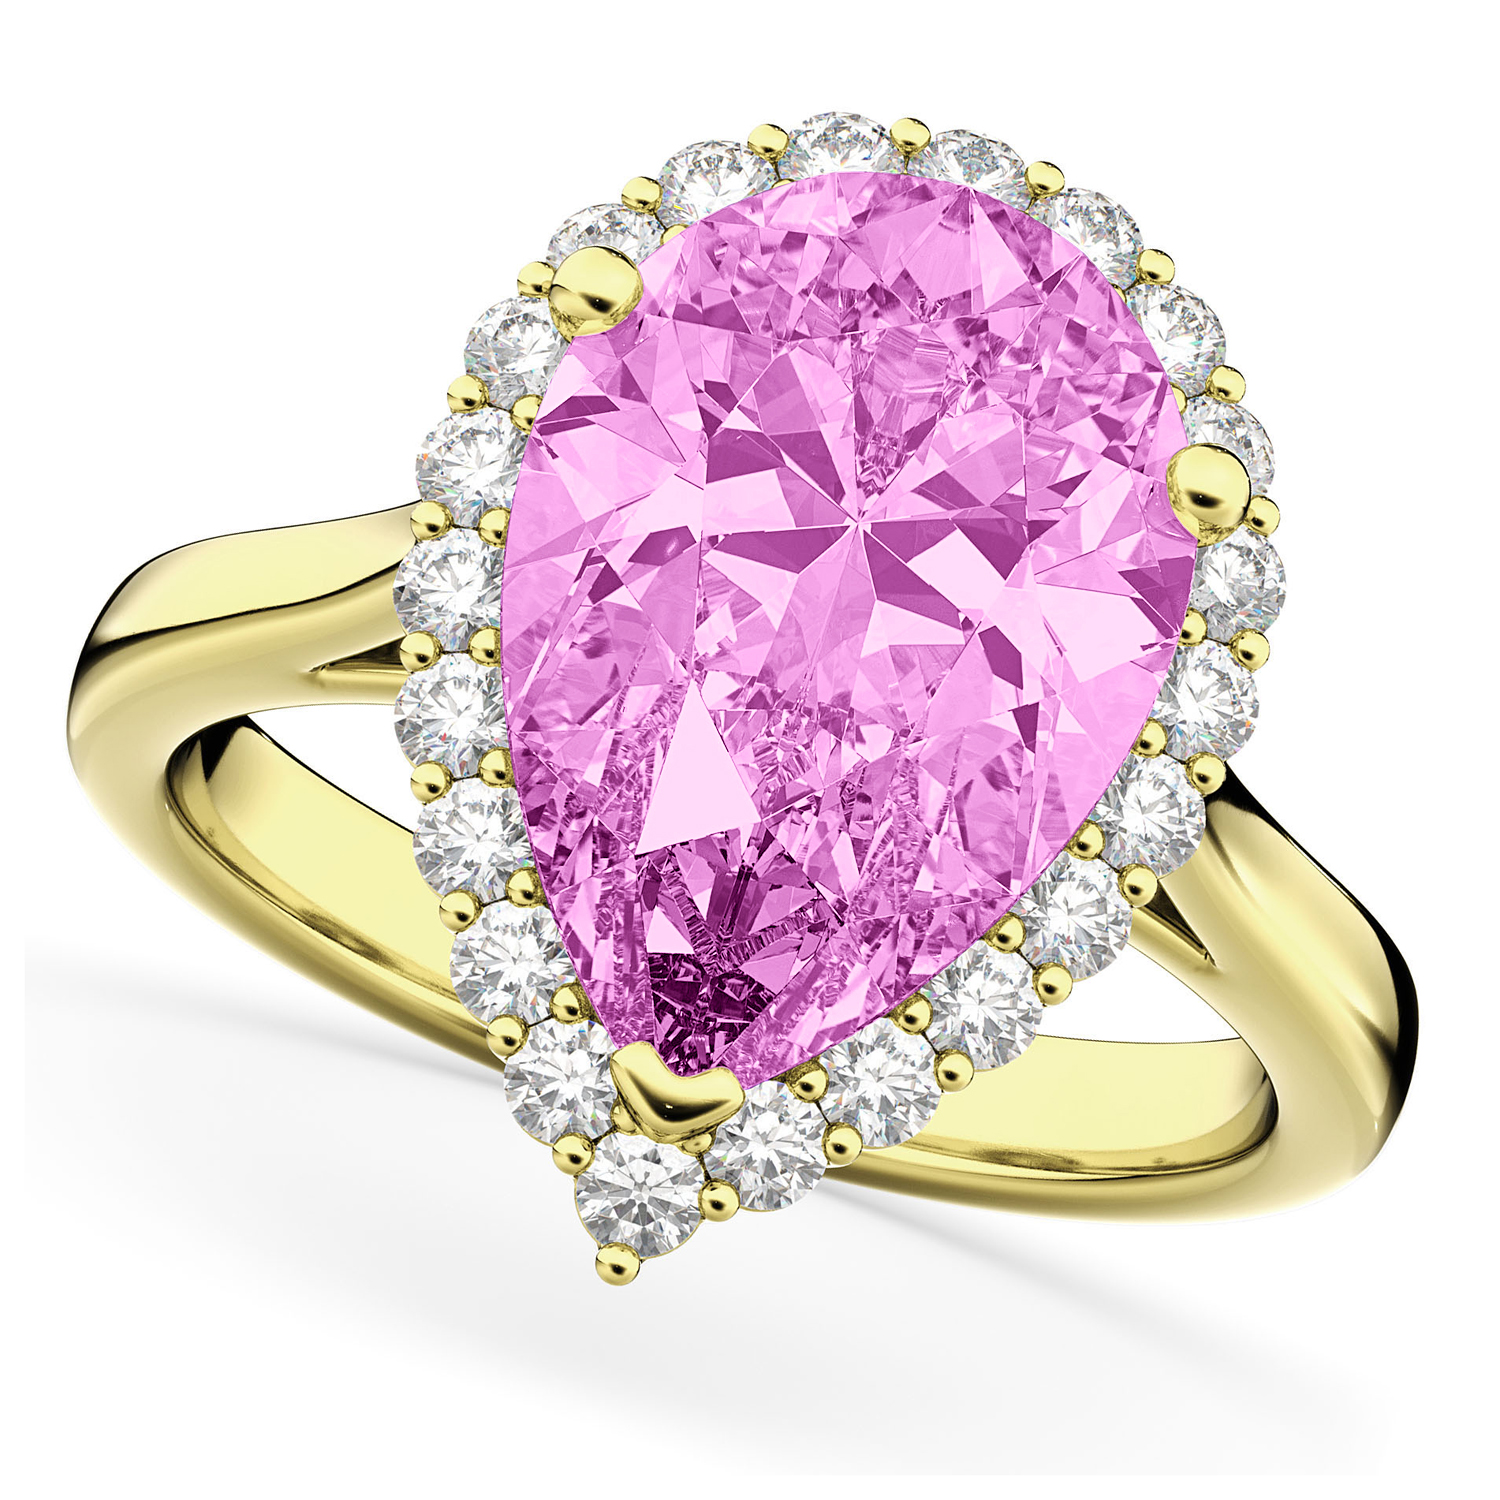 Pear Cut Halo Pink Sapphire & Diamond Engagement Ring 14K Yellow Gold 8.34ct